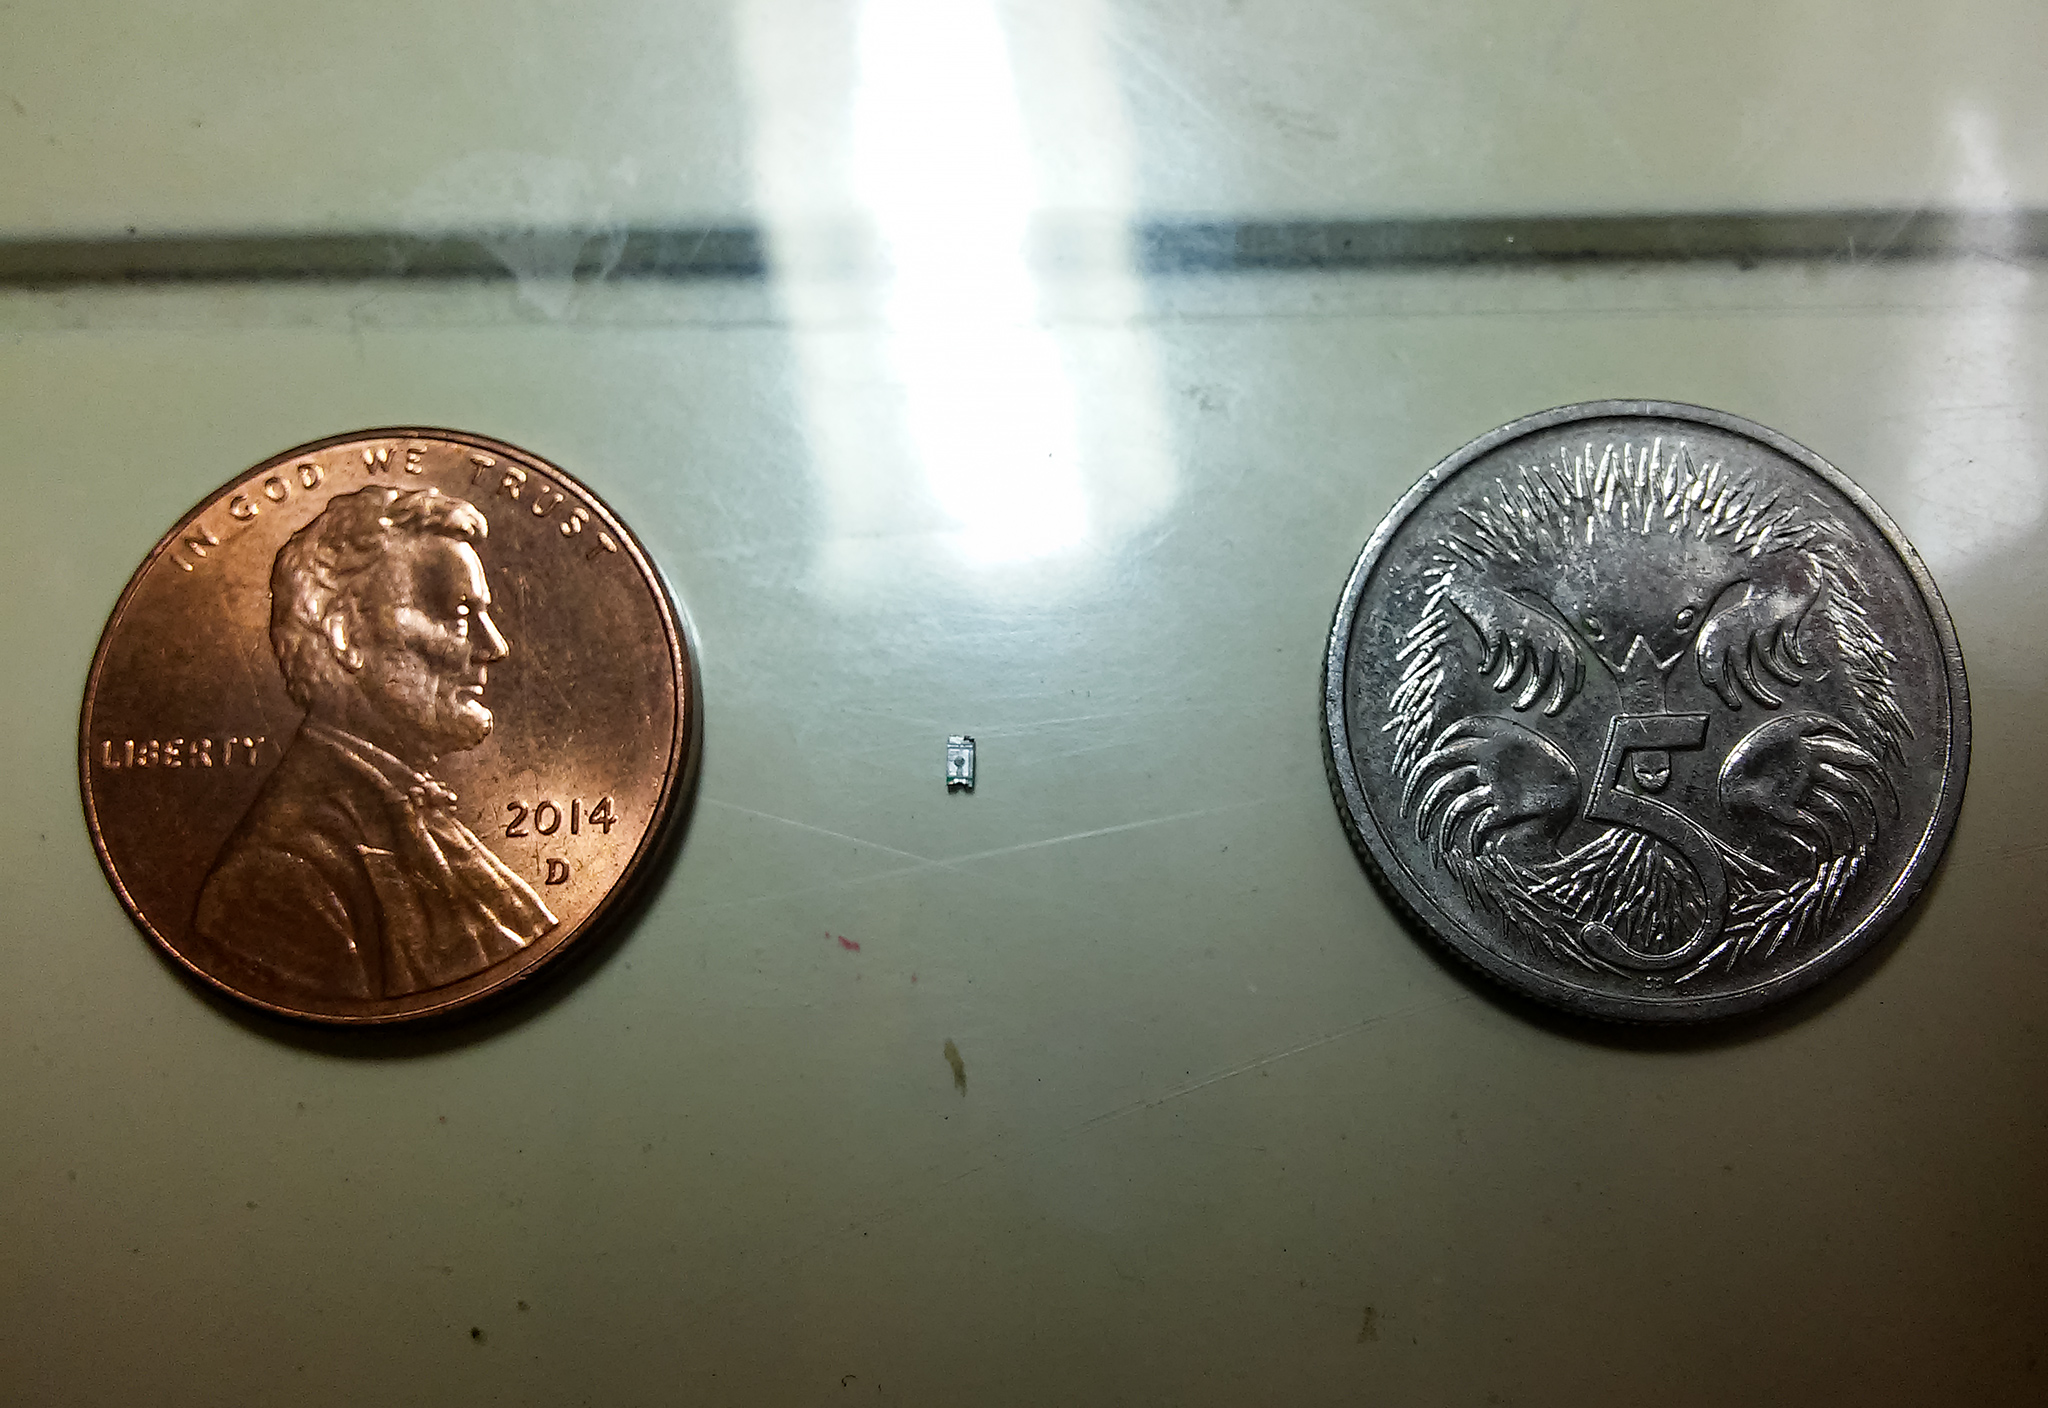 0603 SMD LED compared to a US penny and an Australian 5c coin